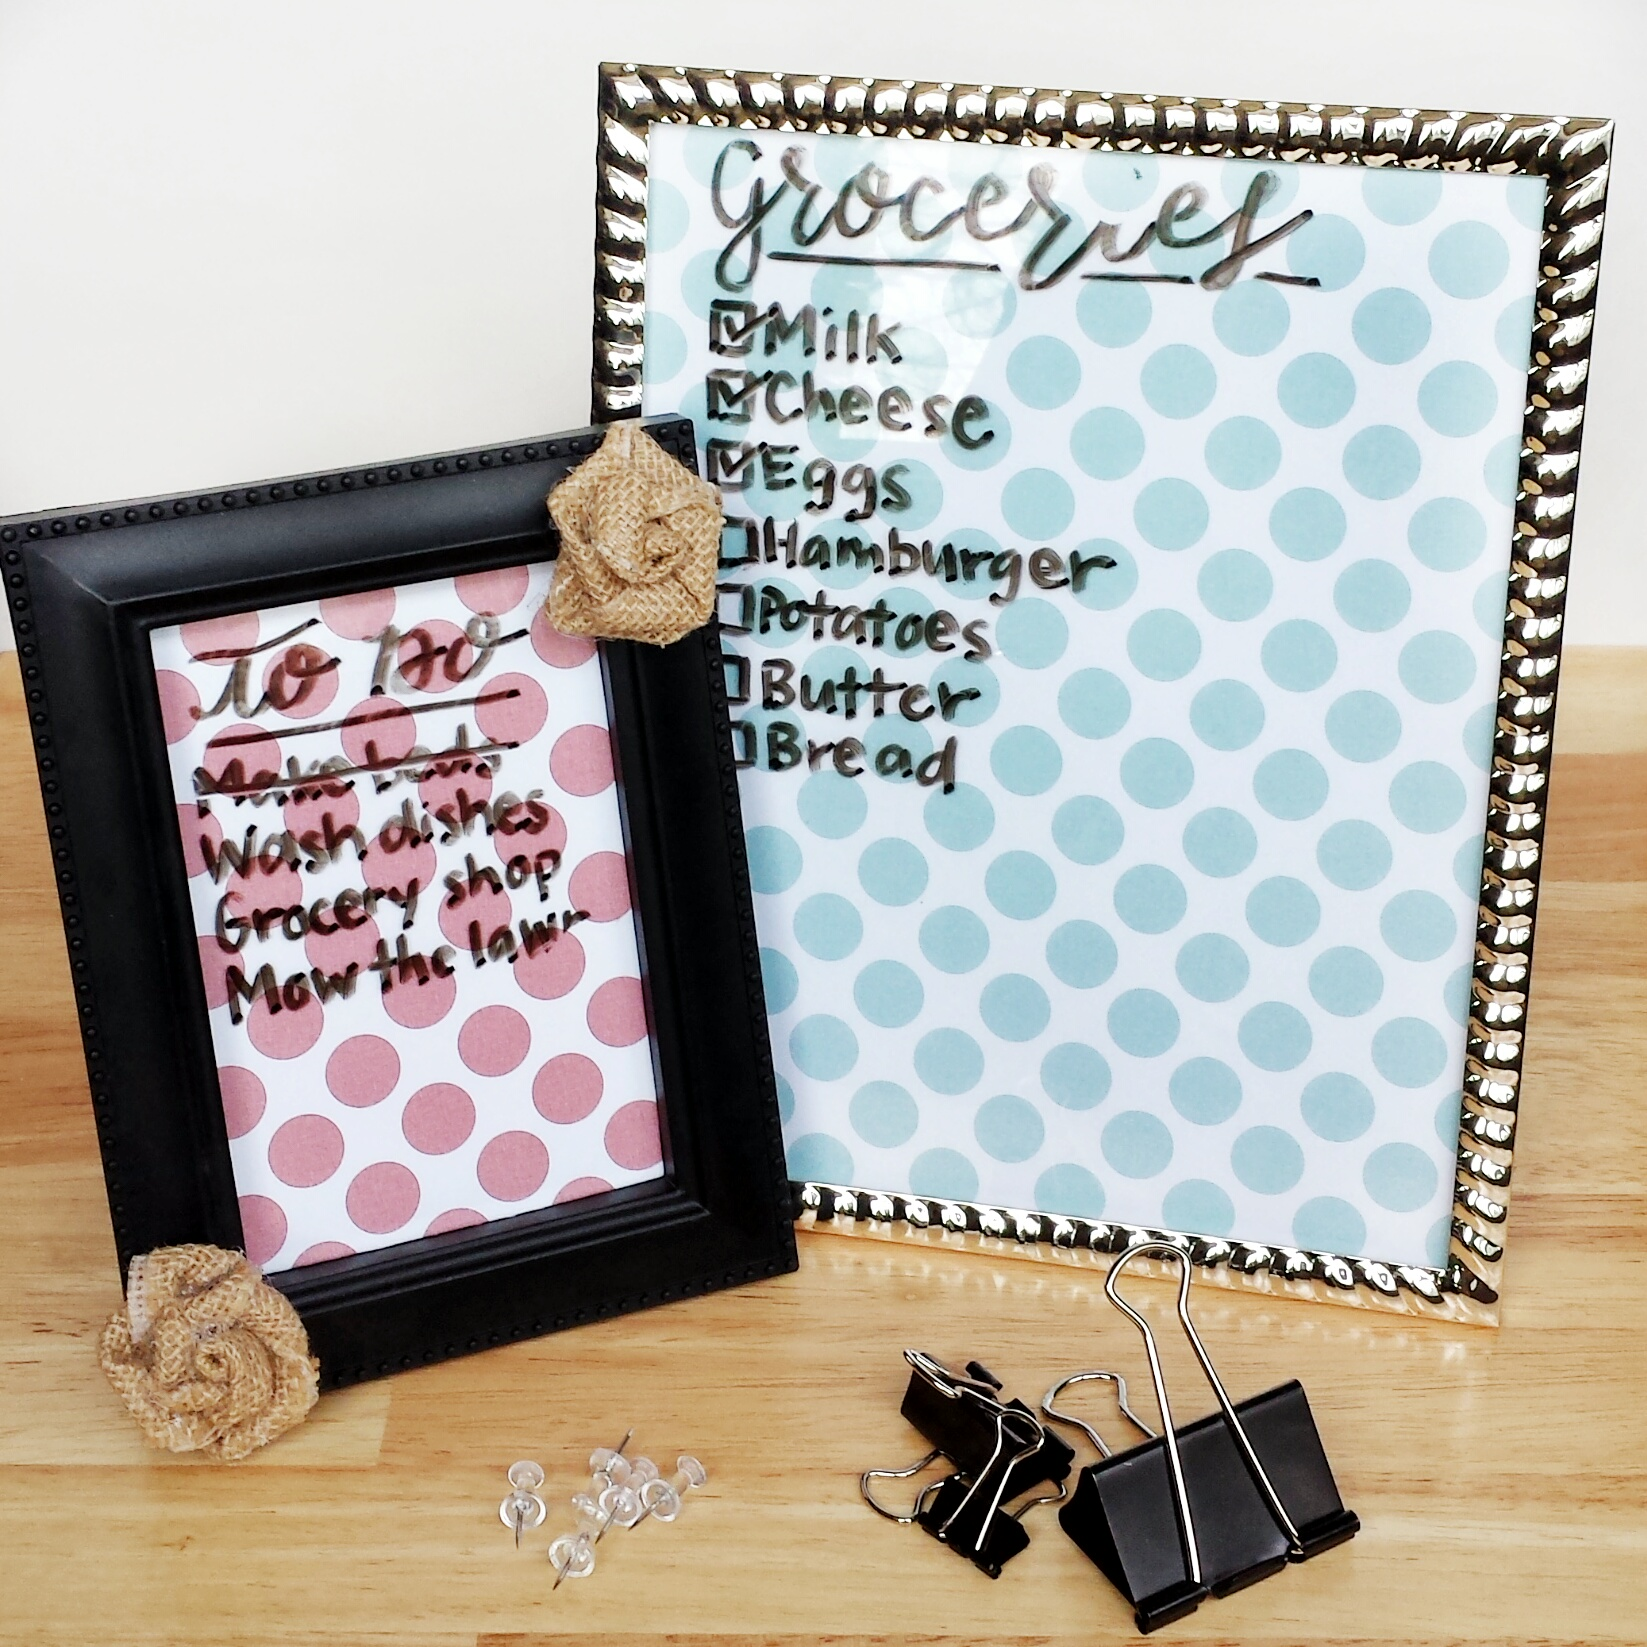 How To Make Your Own Dry Erase Board With A Picture Frame | Create A Dry.  How To Make Your Own Dry Erase Board With A Picture Frame | Create A Dry